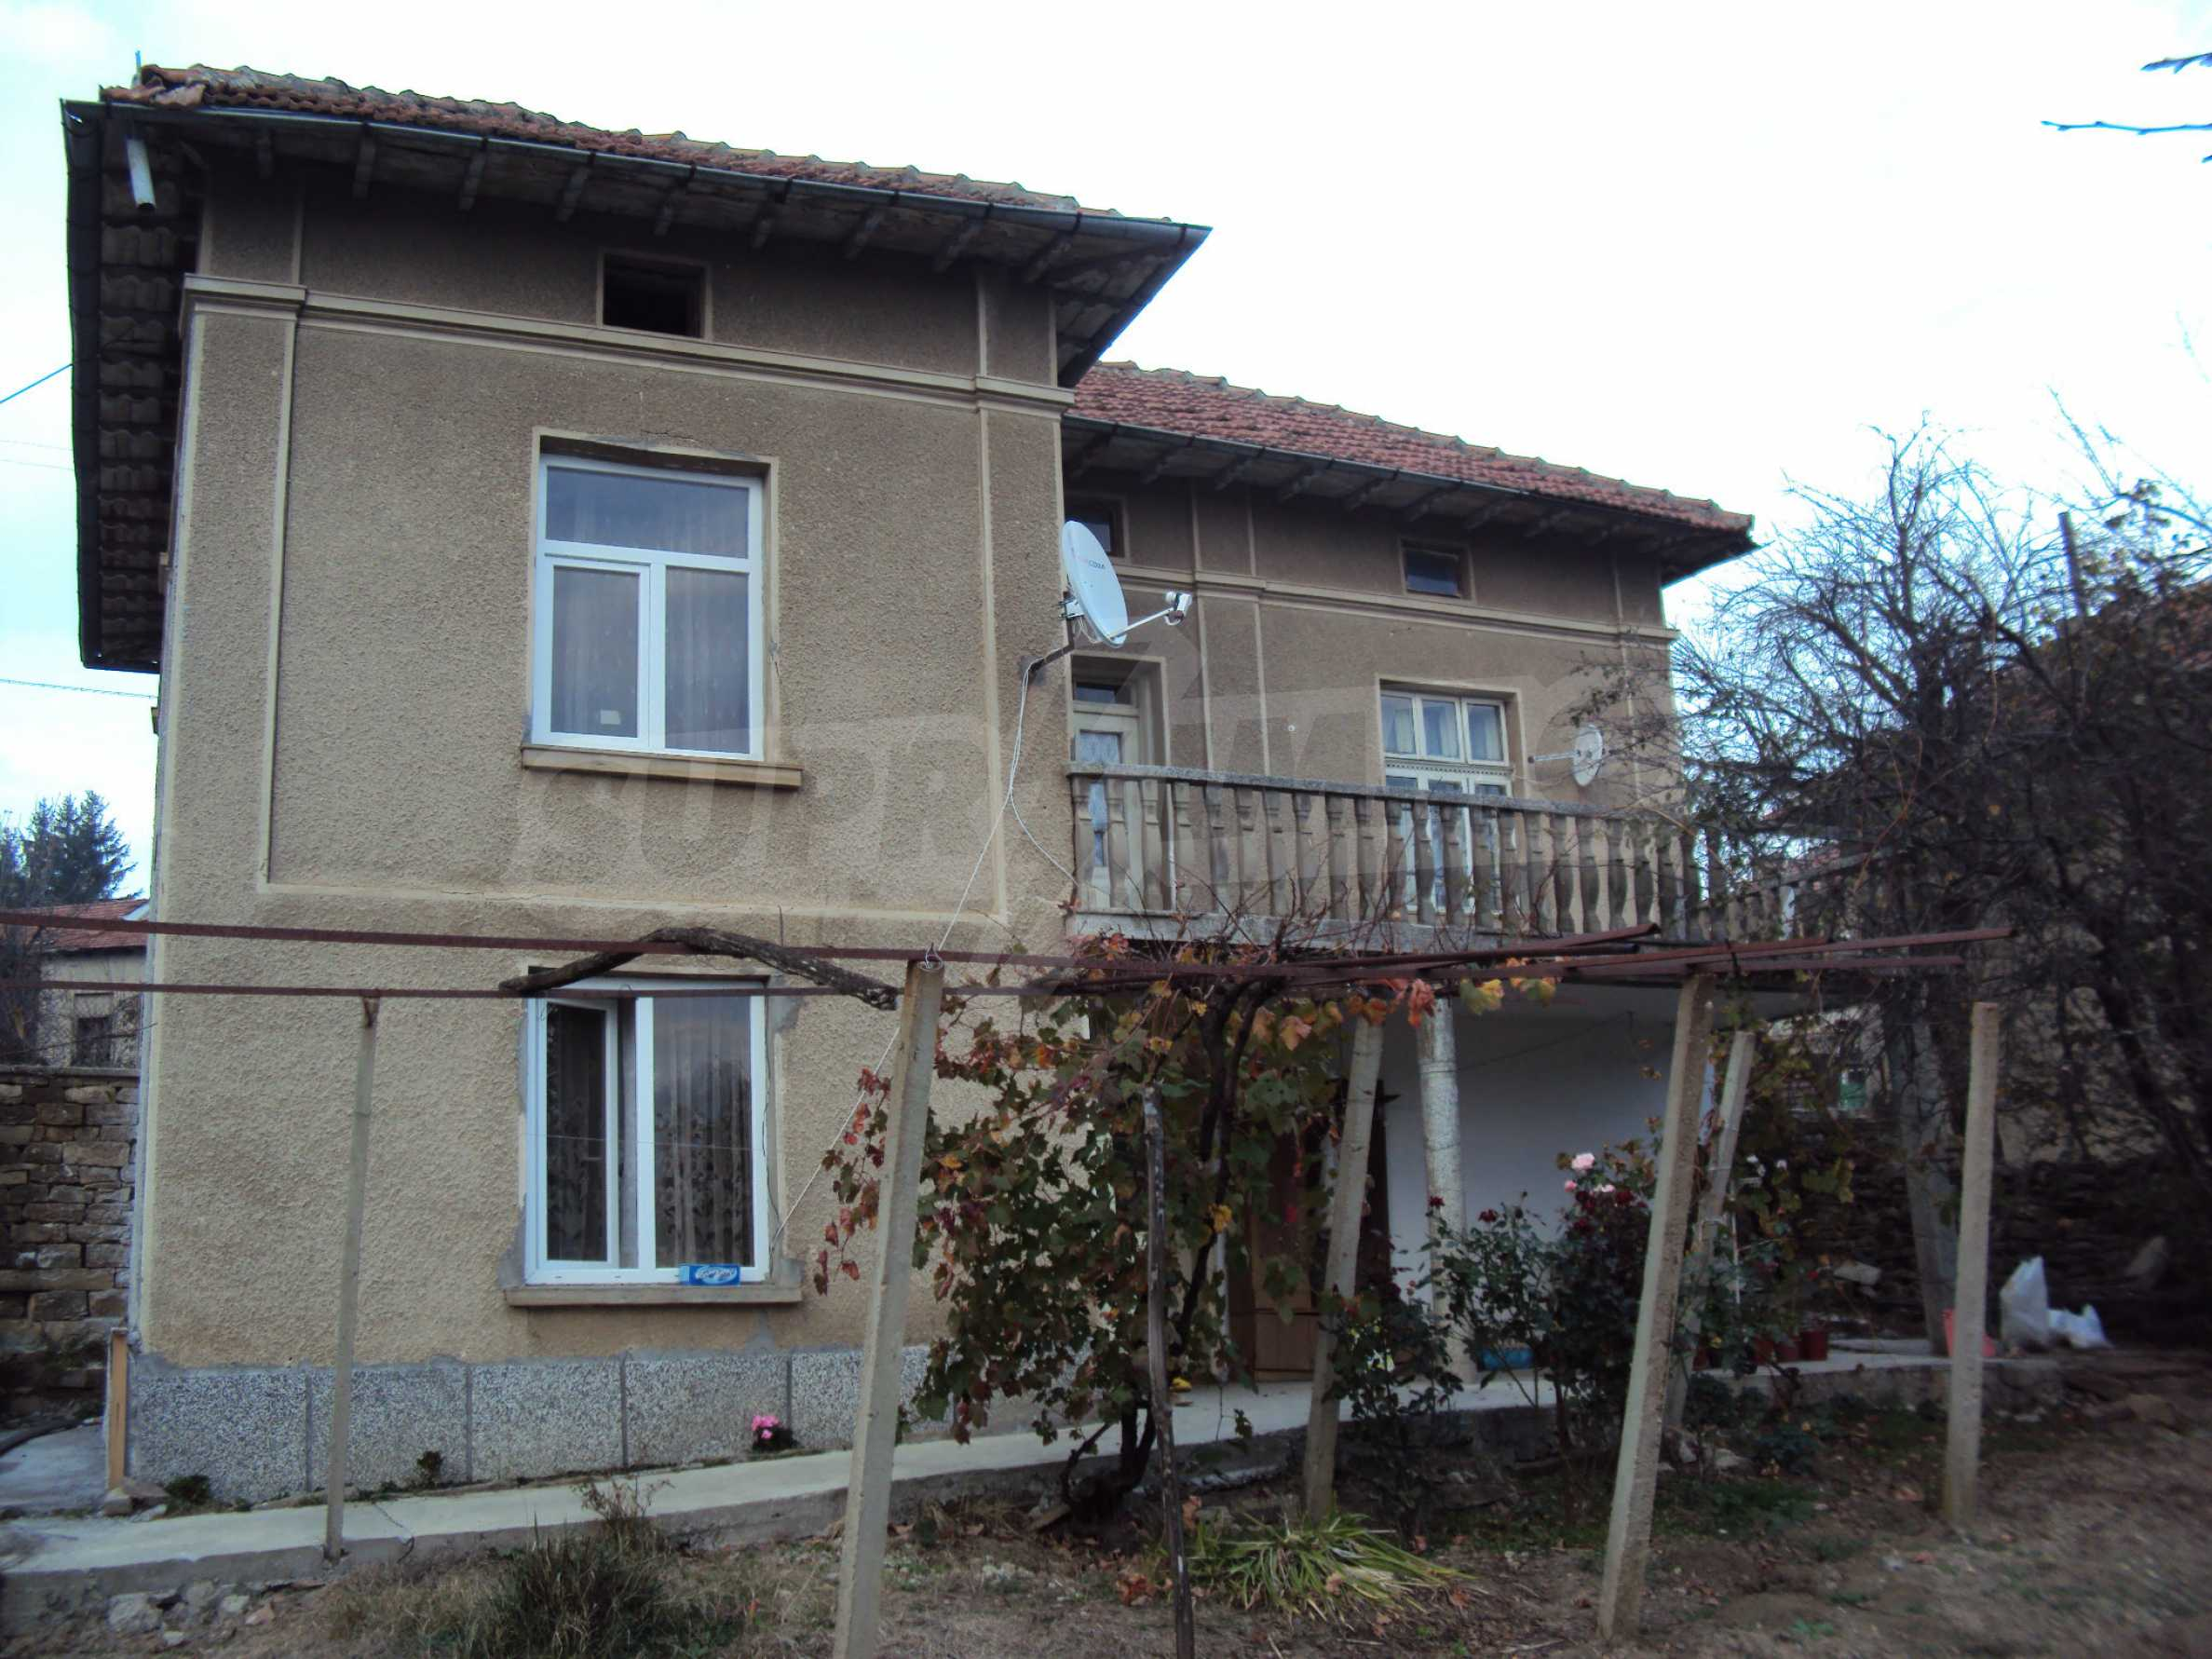 Renovated house with a large garden in a village near Veliko Tarnovo